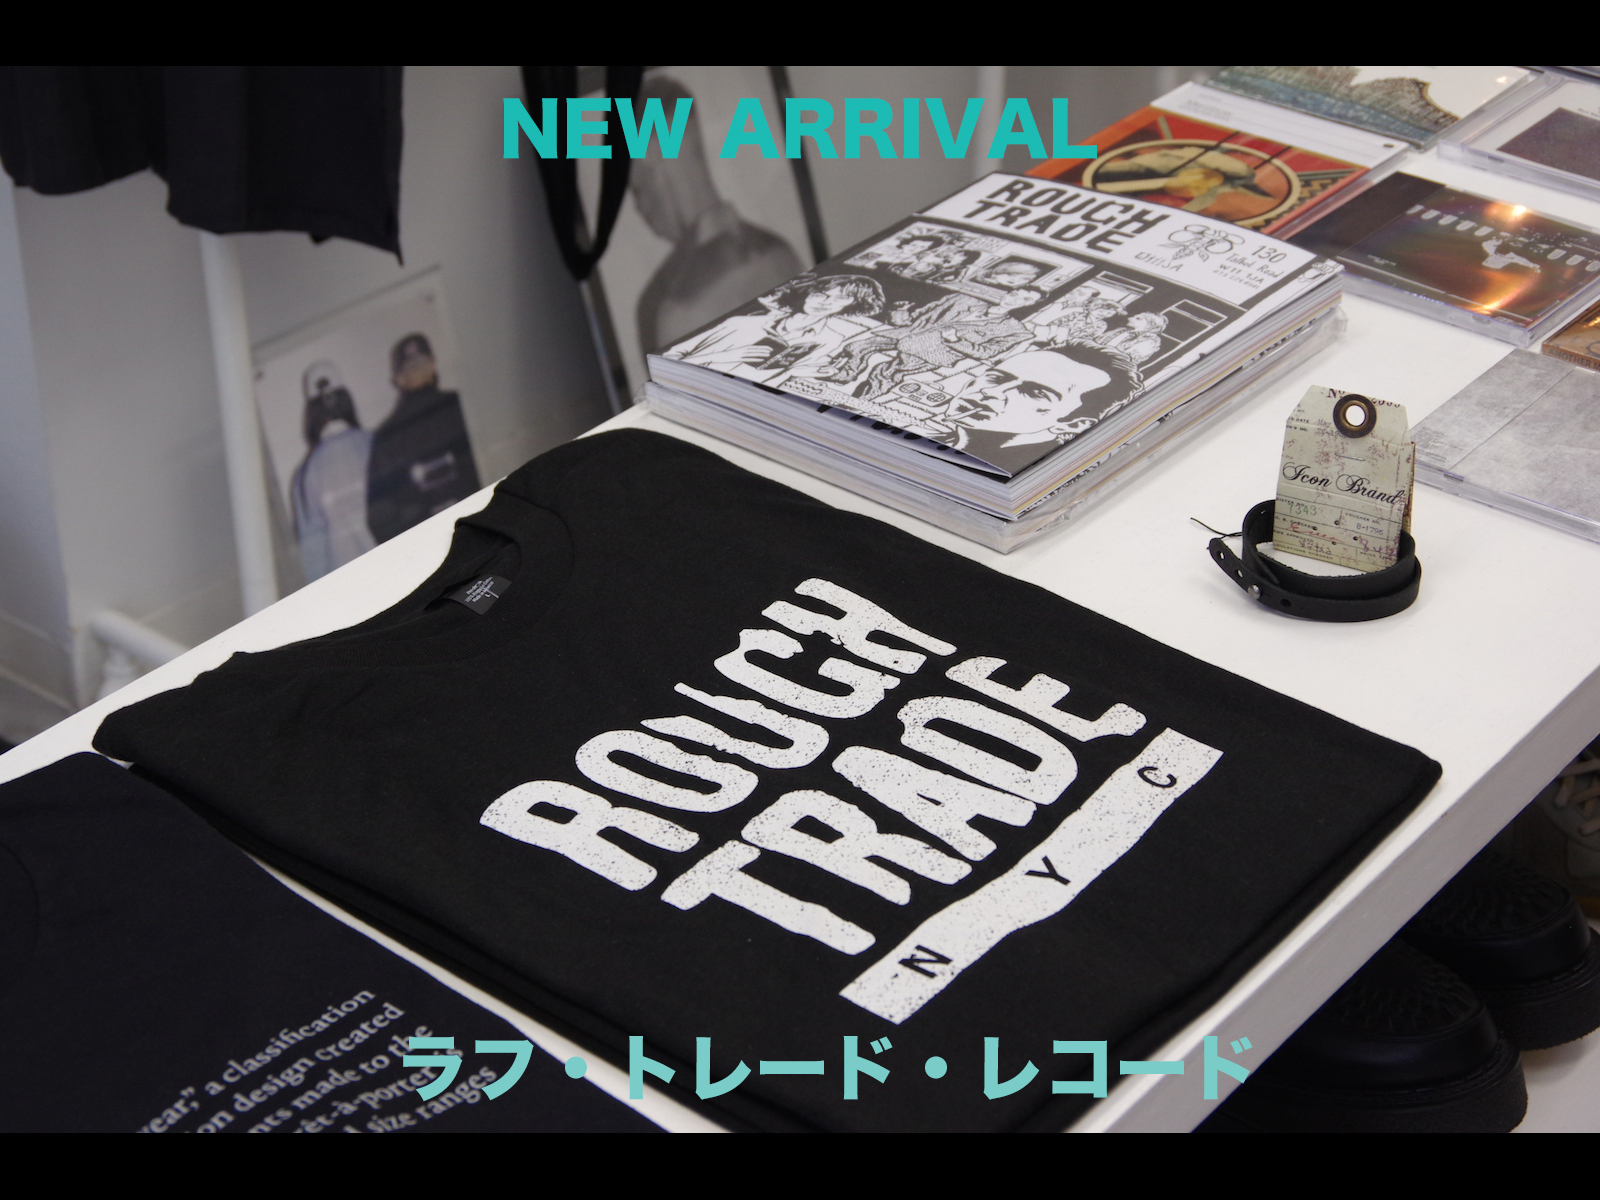 NEW ARRIVAL: ROUGH TRADE LIMITED ITEM